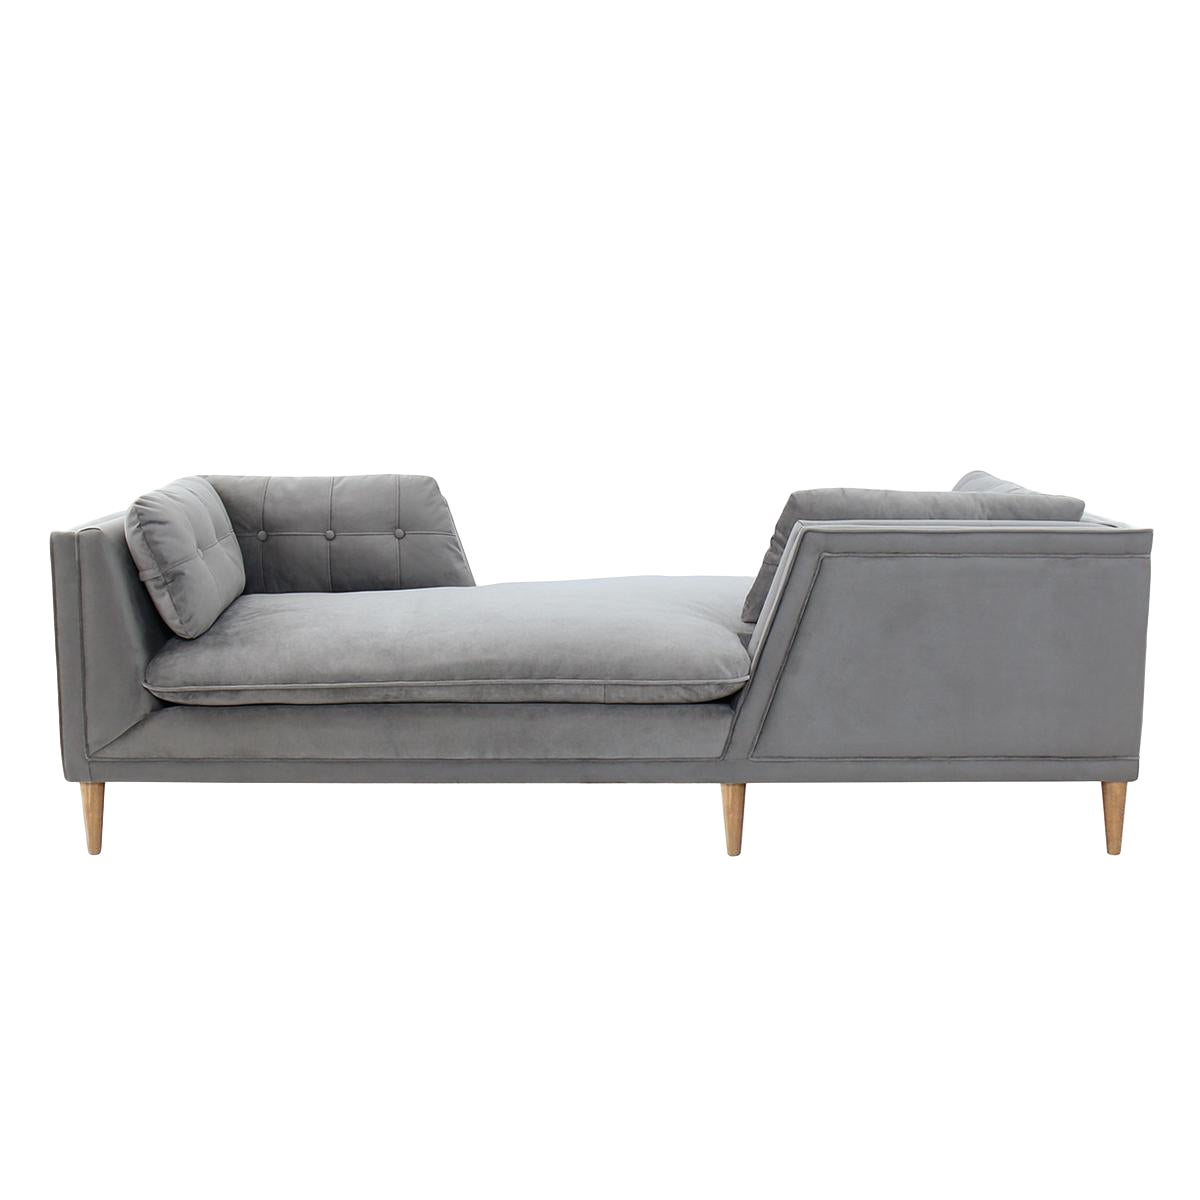 Two Sided Modern Sofa Daybed